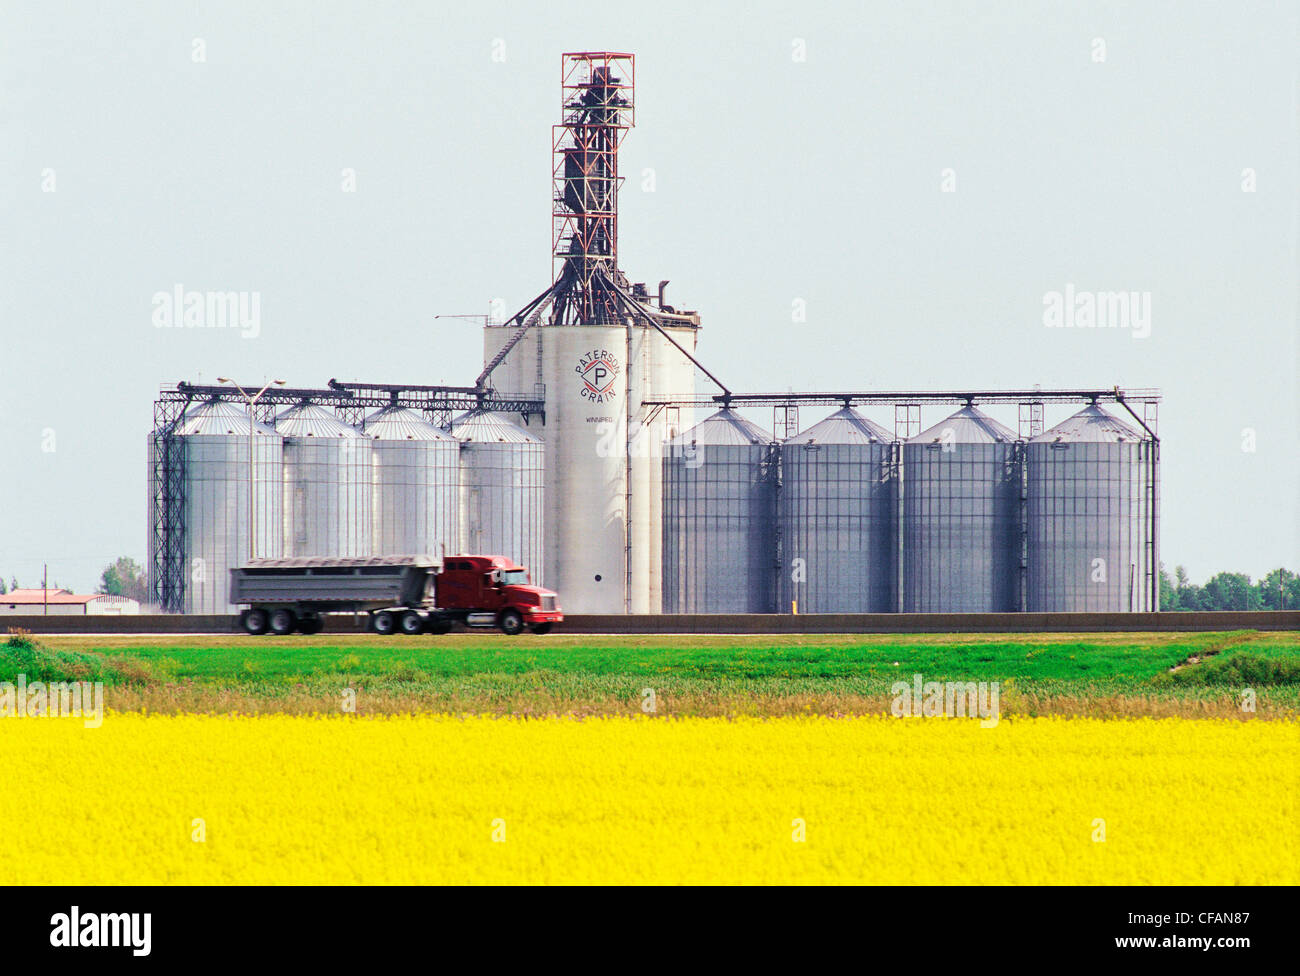 Blooming canola field with transport truck and inland grain terminal in the background, near Winnipeg, Manitoba, - Stock Image